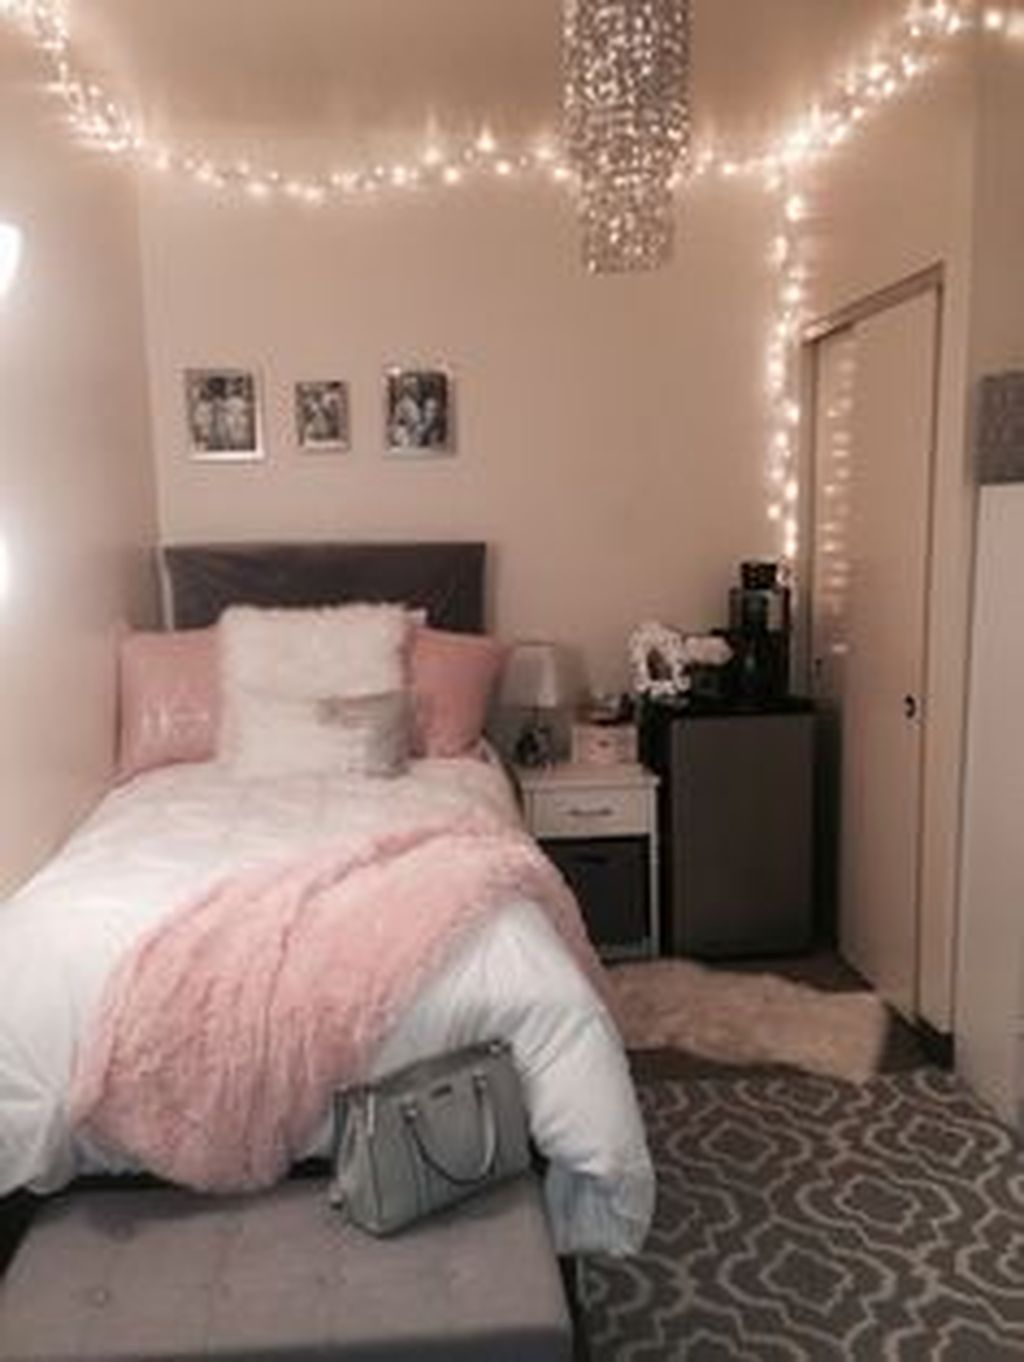 Awesome 20 Splendid Small Bedroom Ideas For Teens Dorm Room